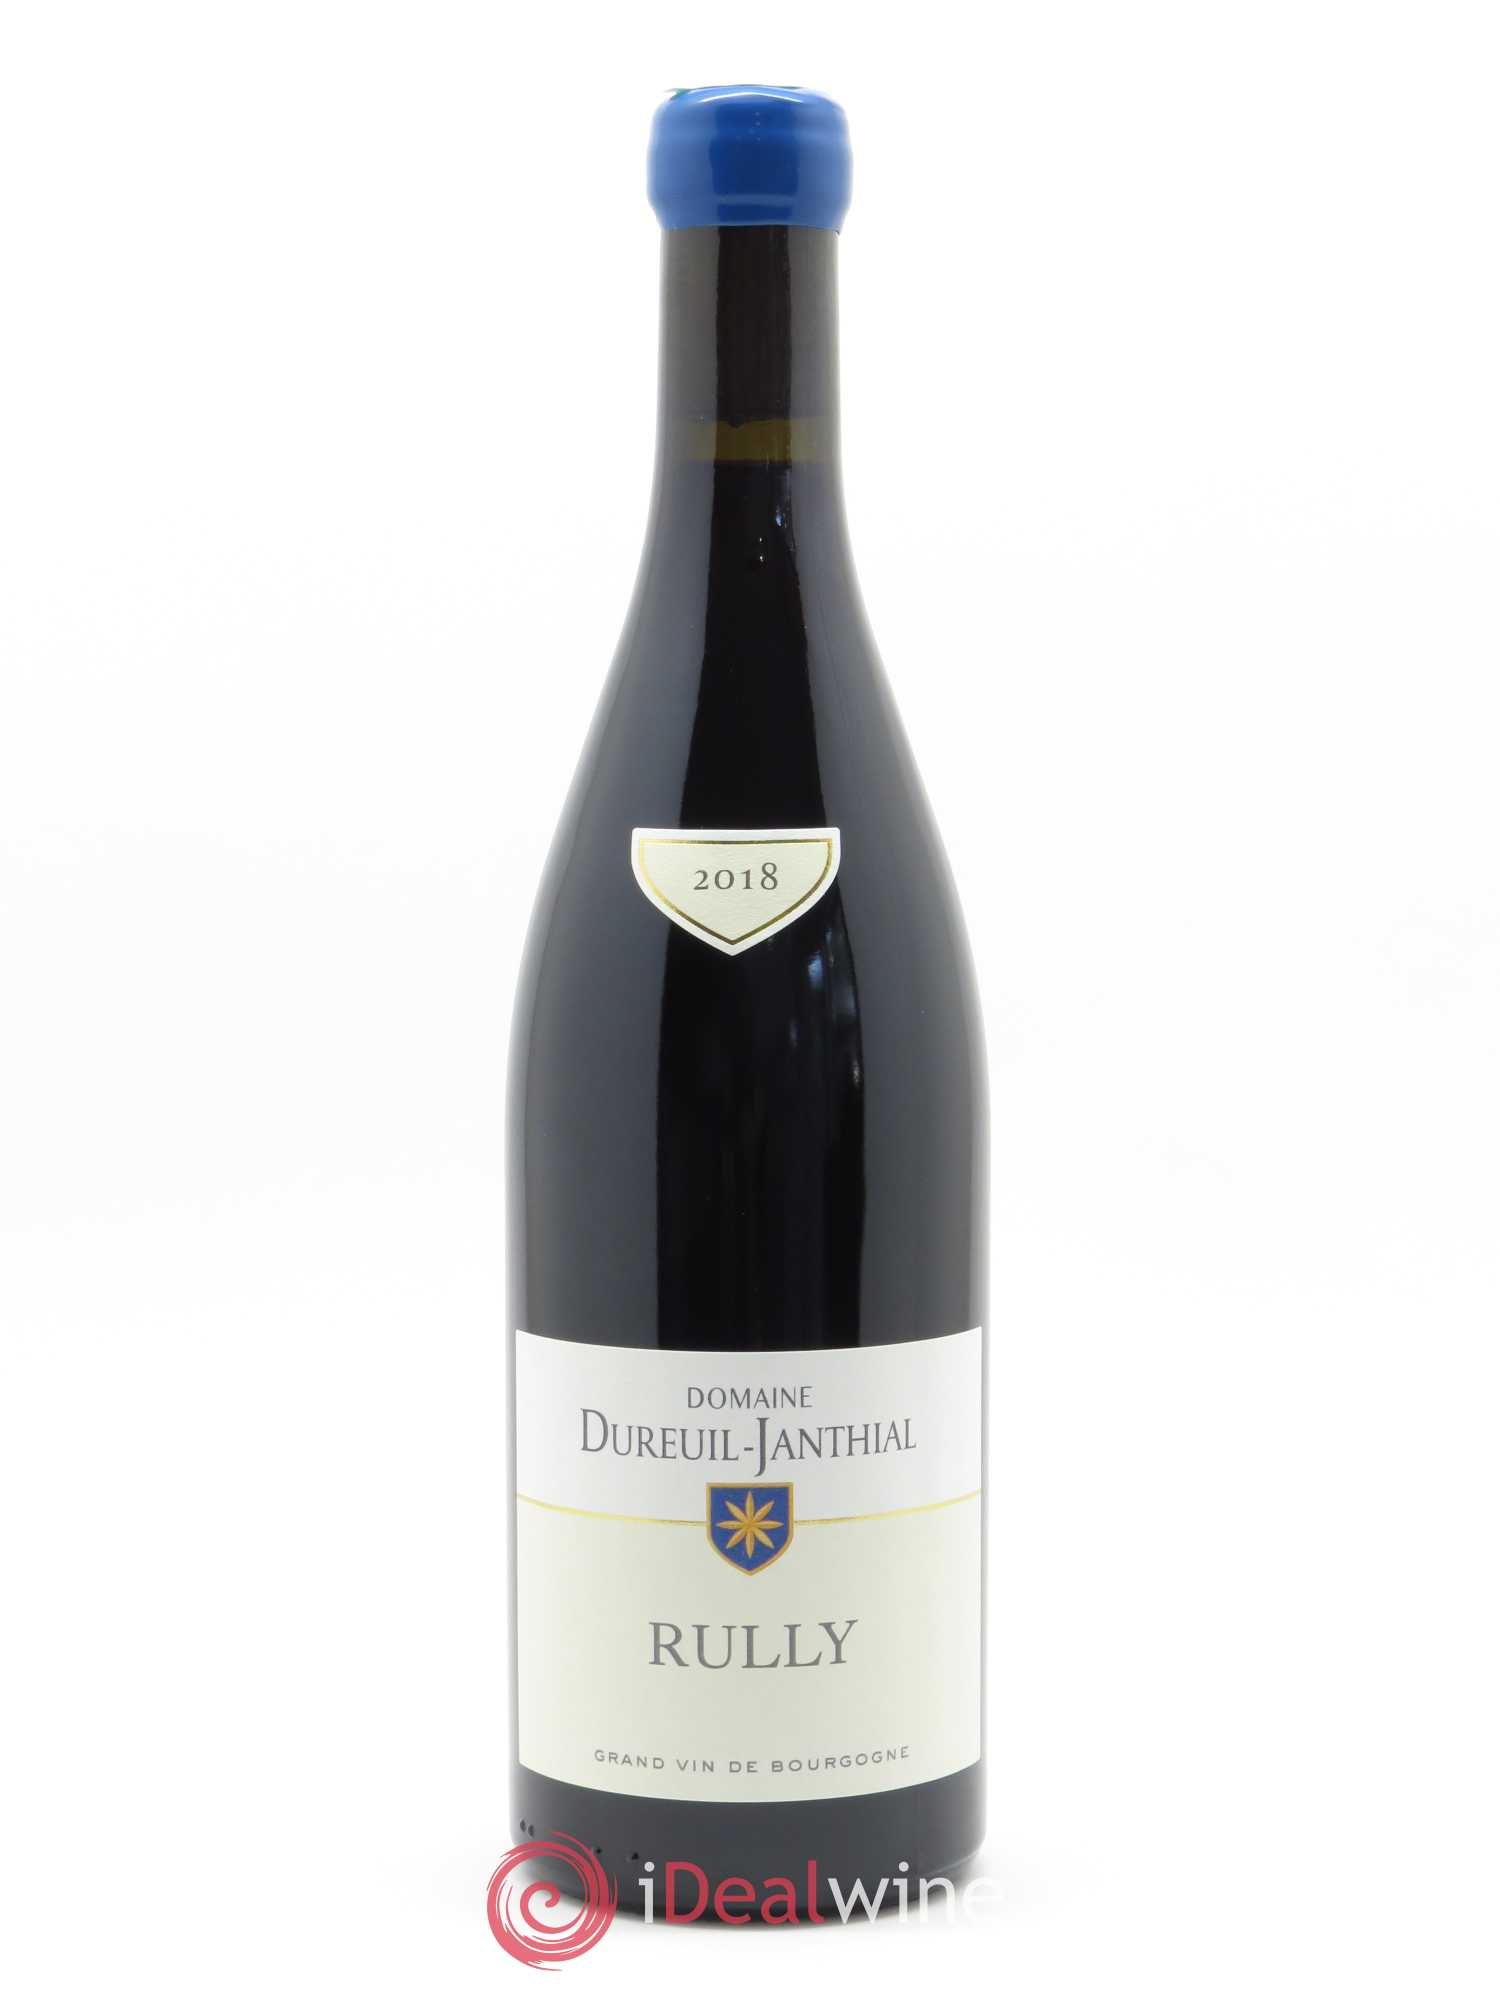 Rully Vincent Dureuil-Janthial  2018 - Lot of 1 Bottle